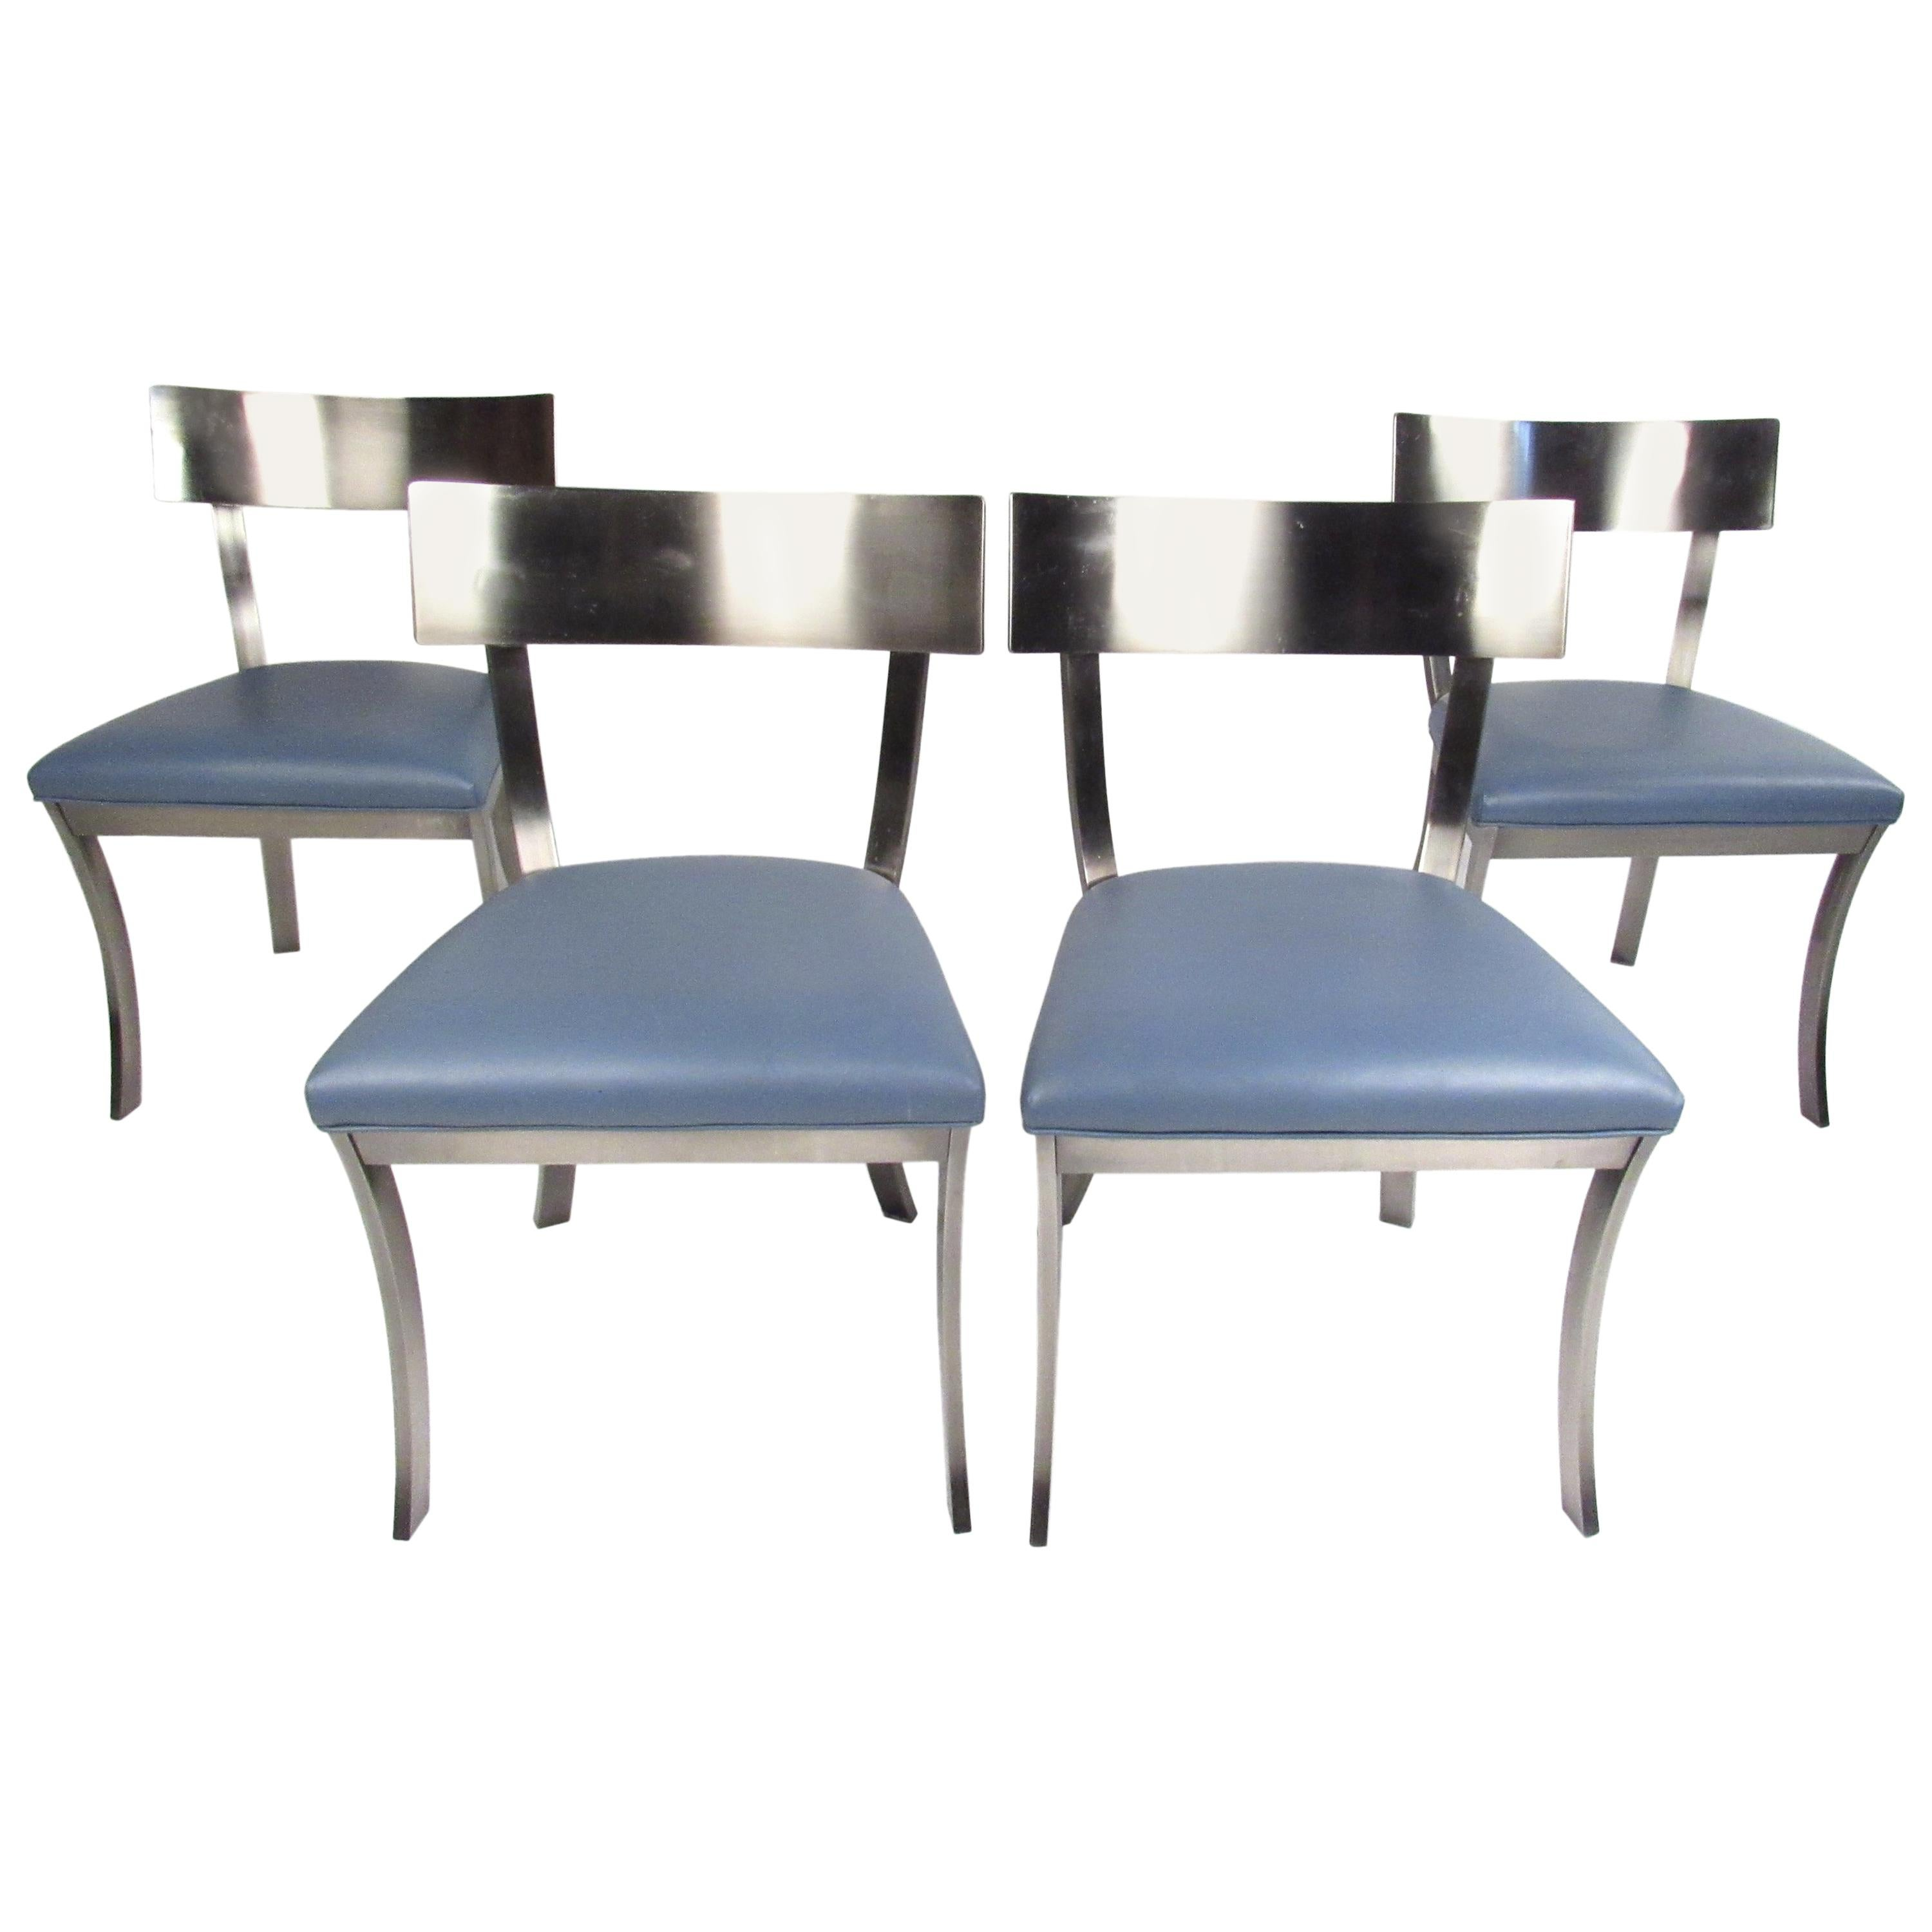 Set of Four Metal Dining Chairs by Design Institute of America